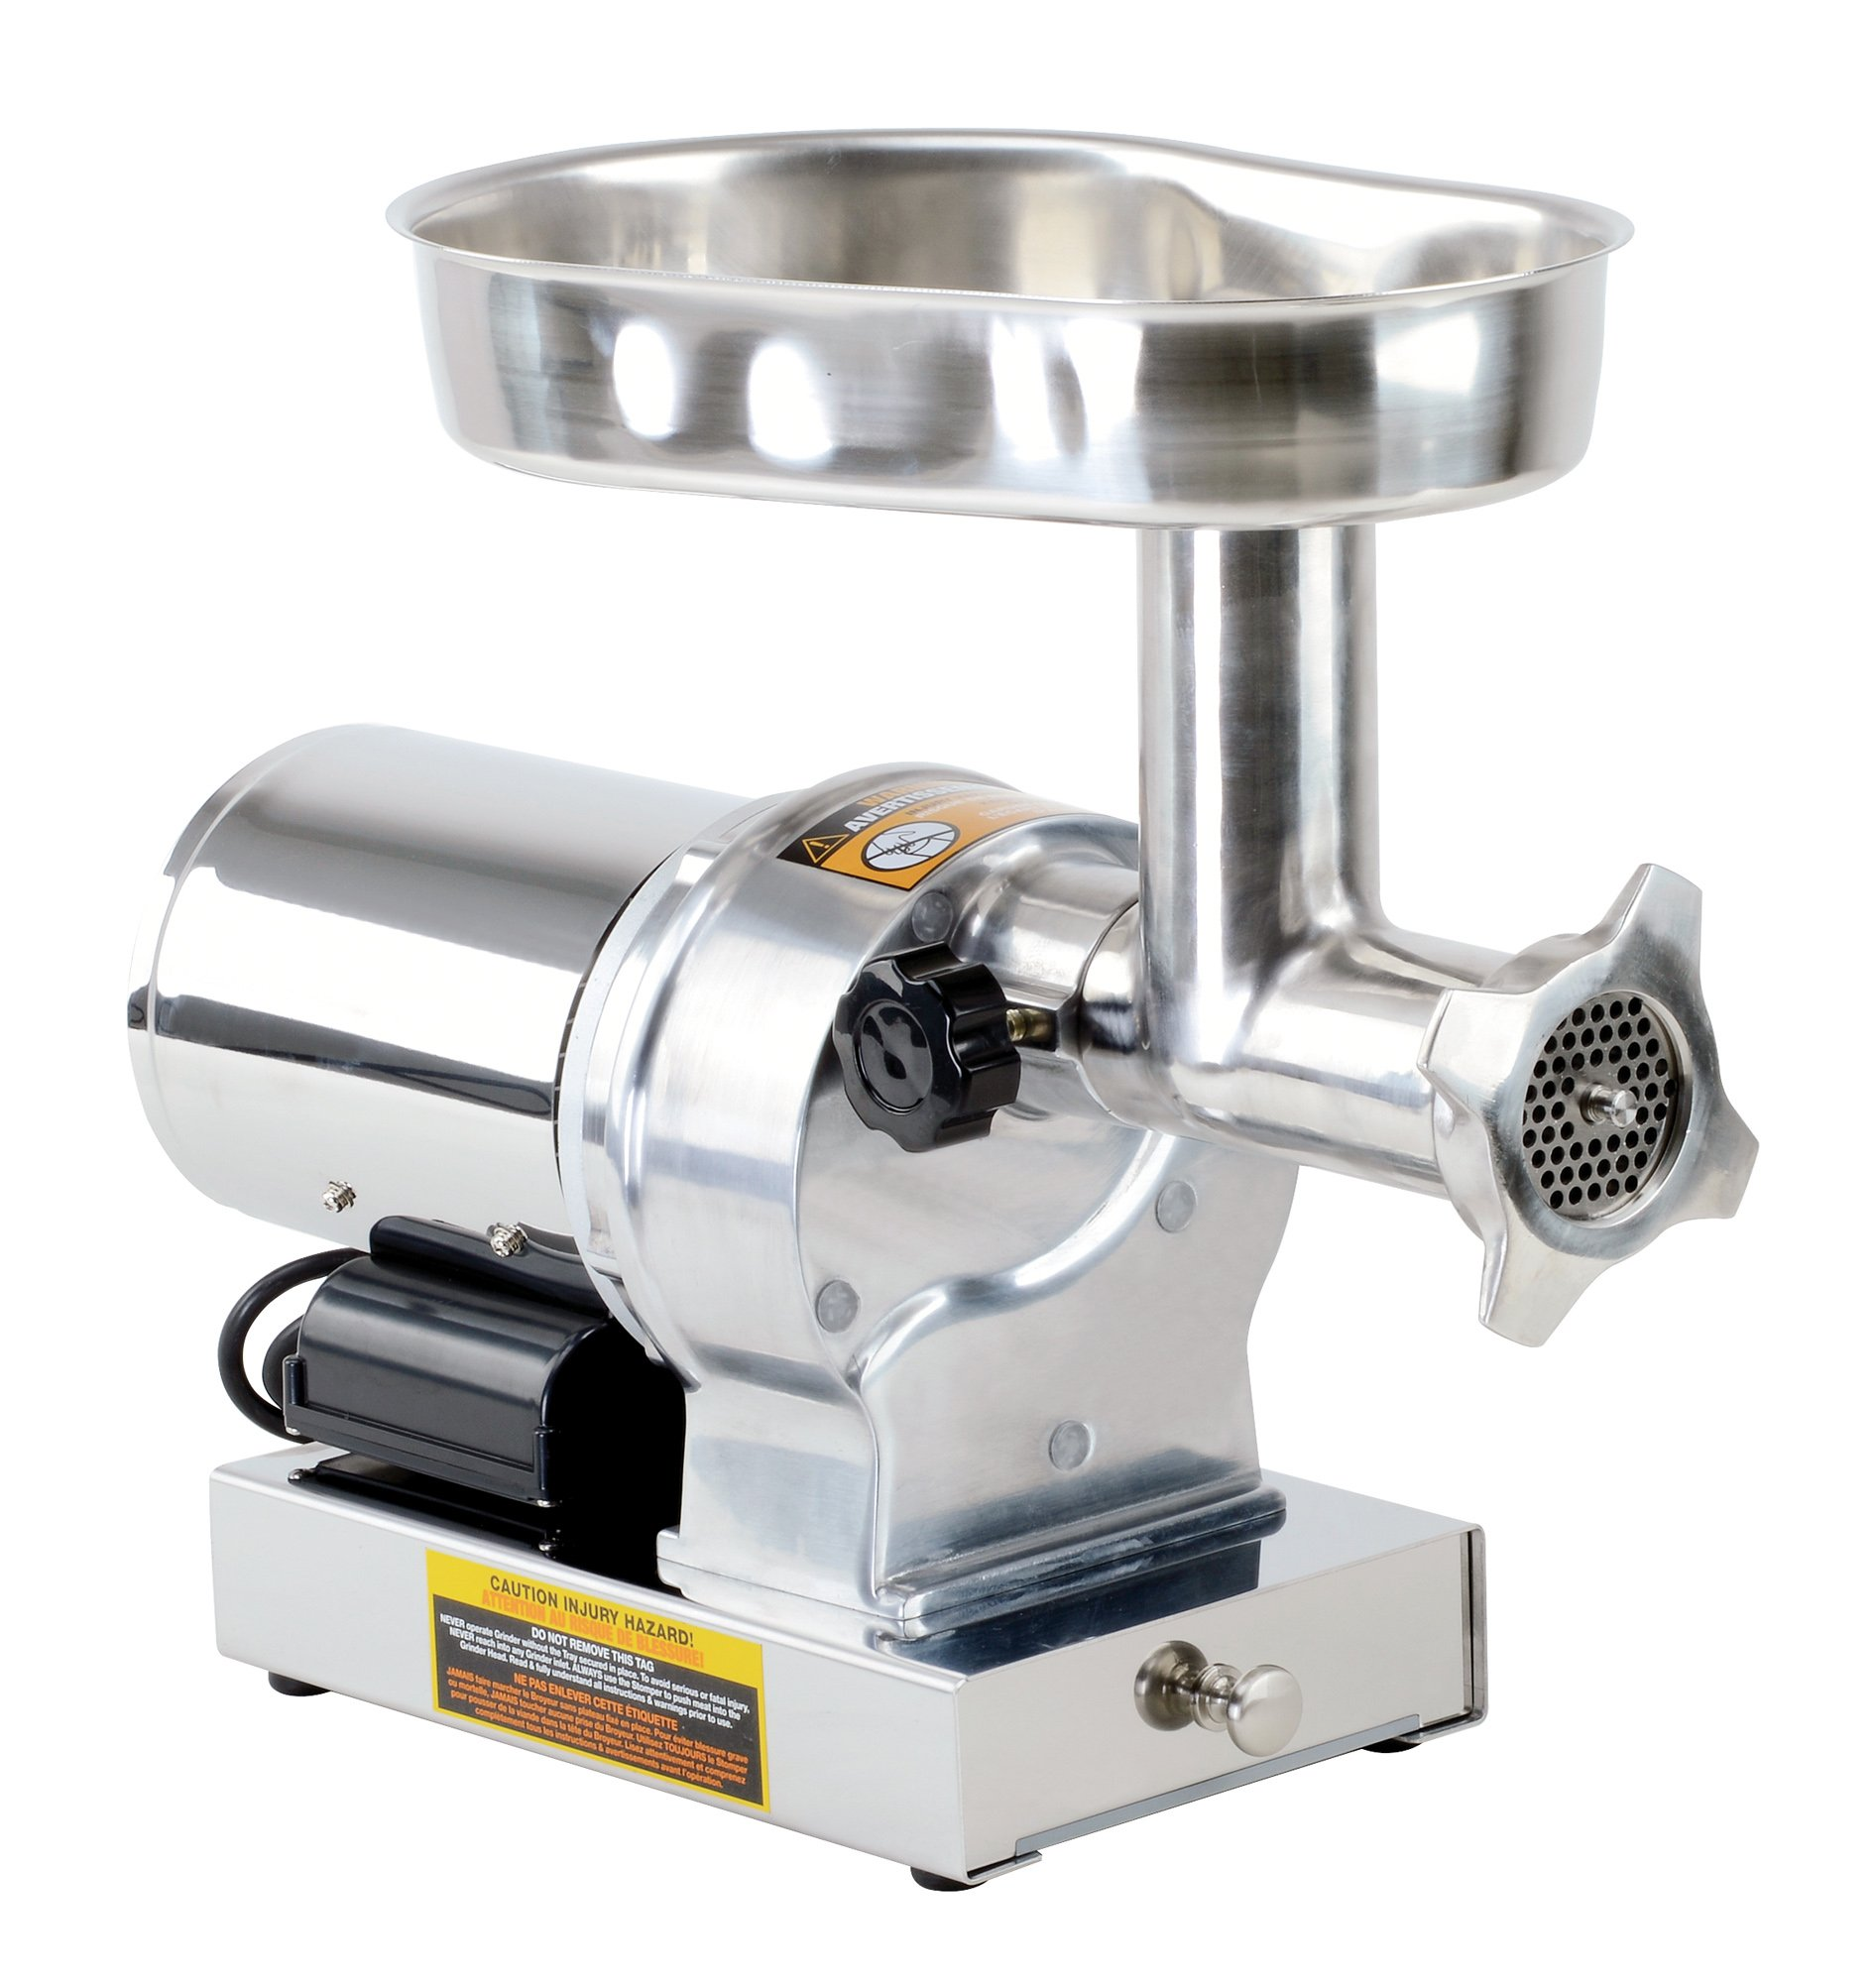 Kitchener #8 Commercial Grade Electric Stainless Steel Meat Grinder 1/2 HP (370W), (480-lbs Per Hour) by Kitchener (Image #3)